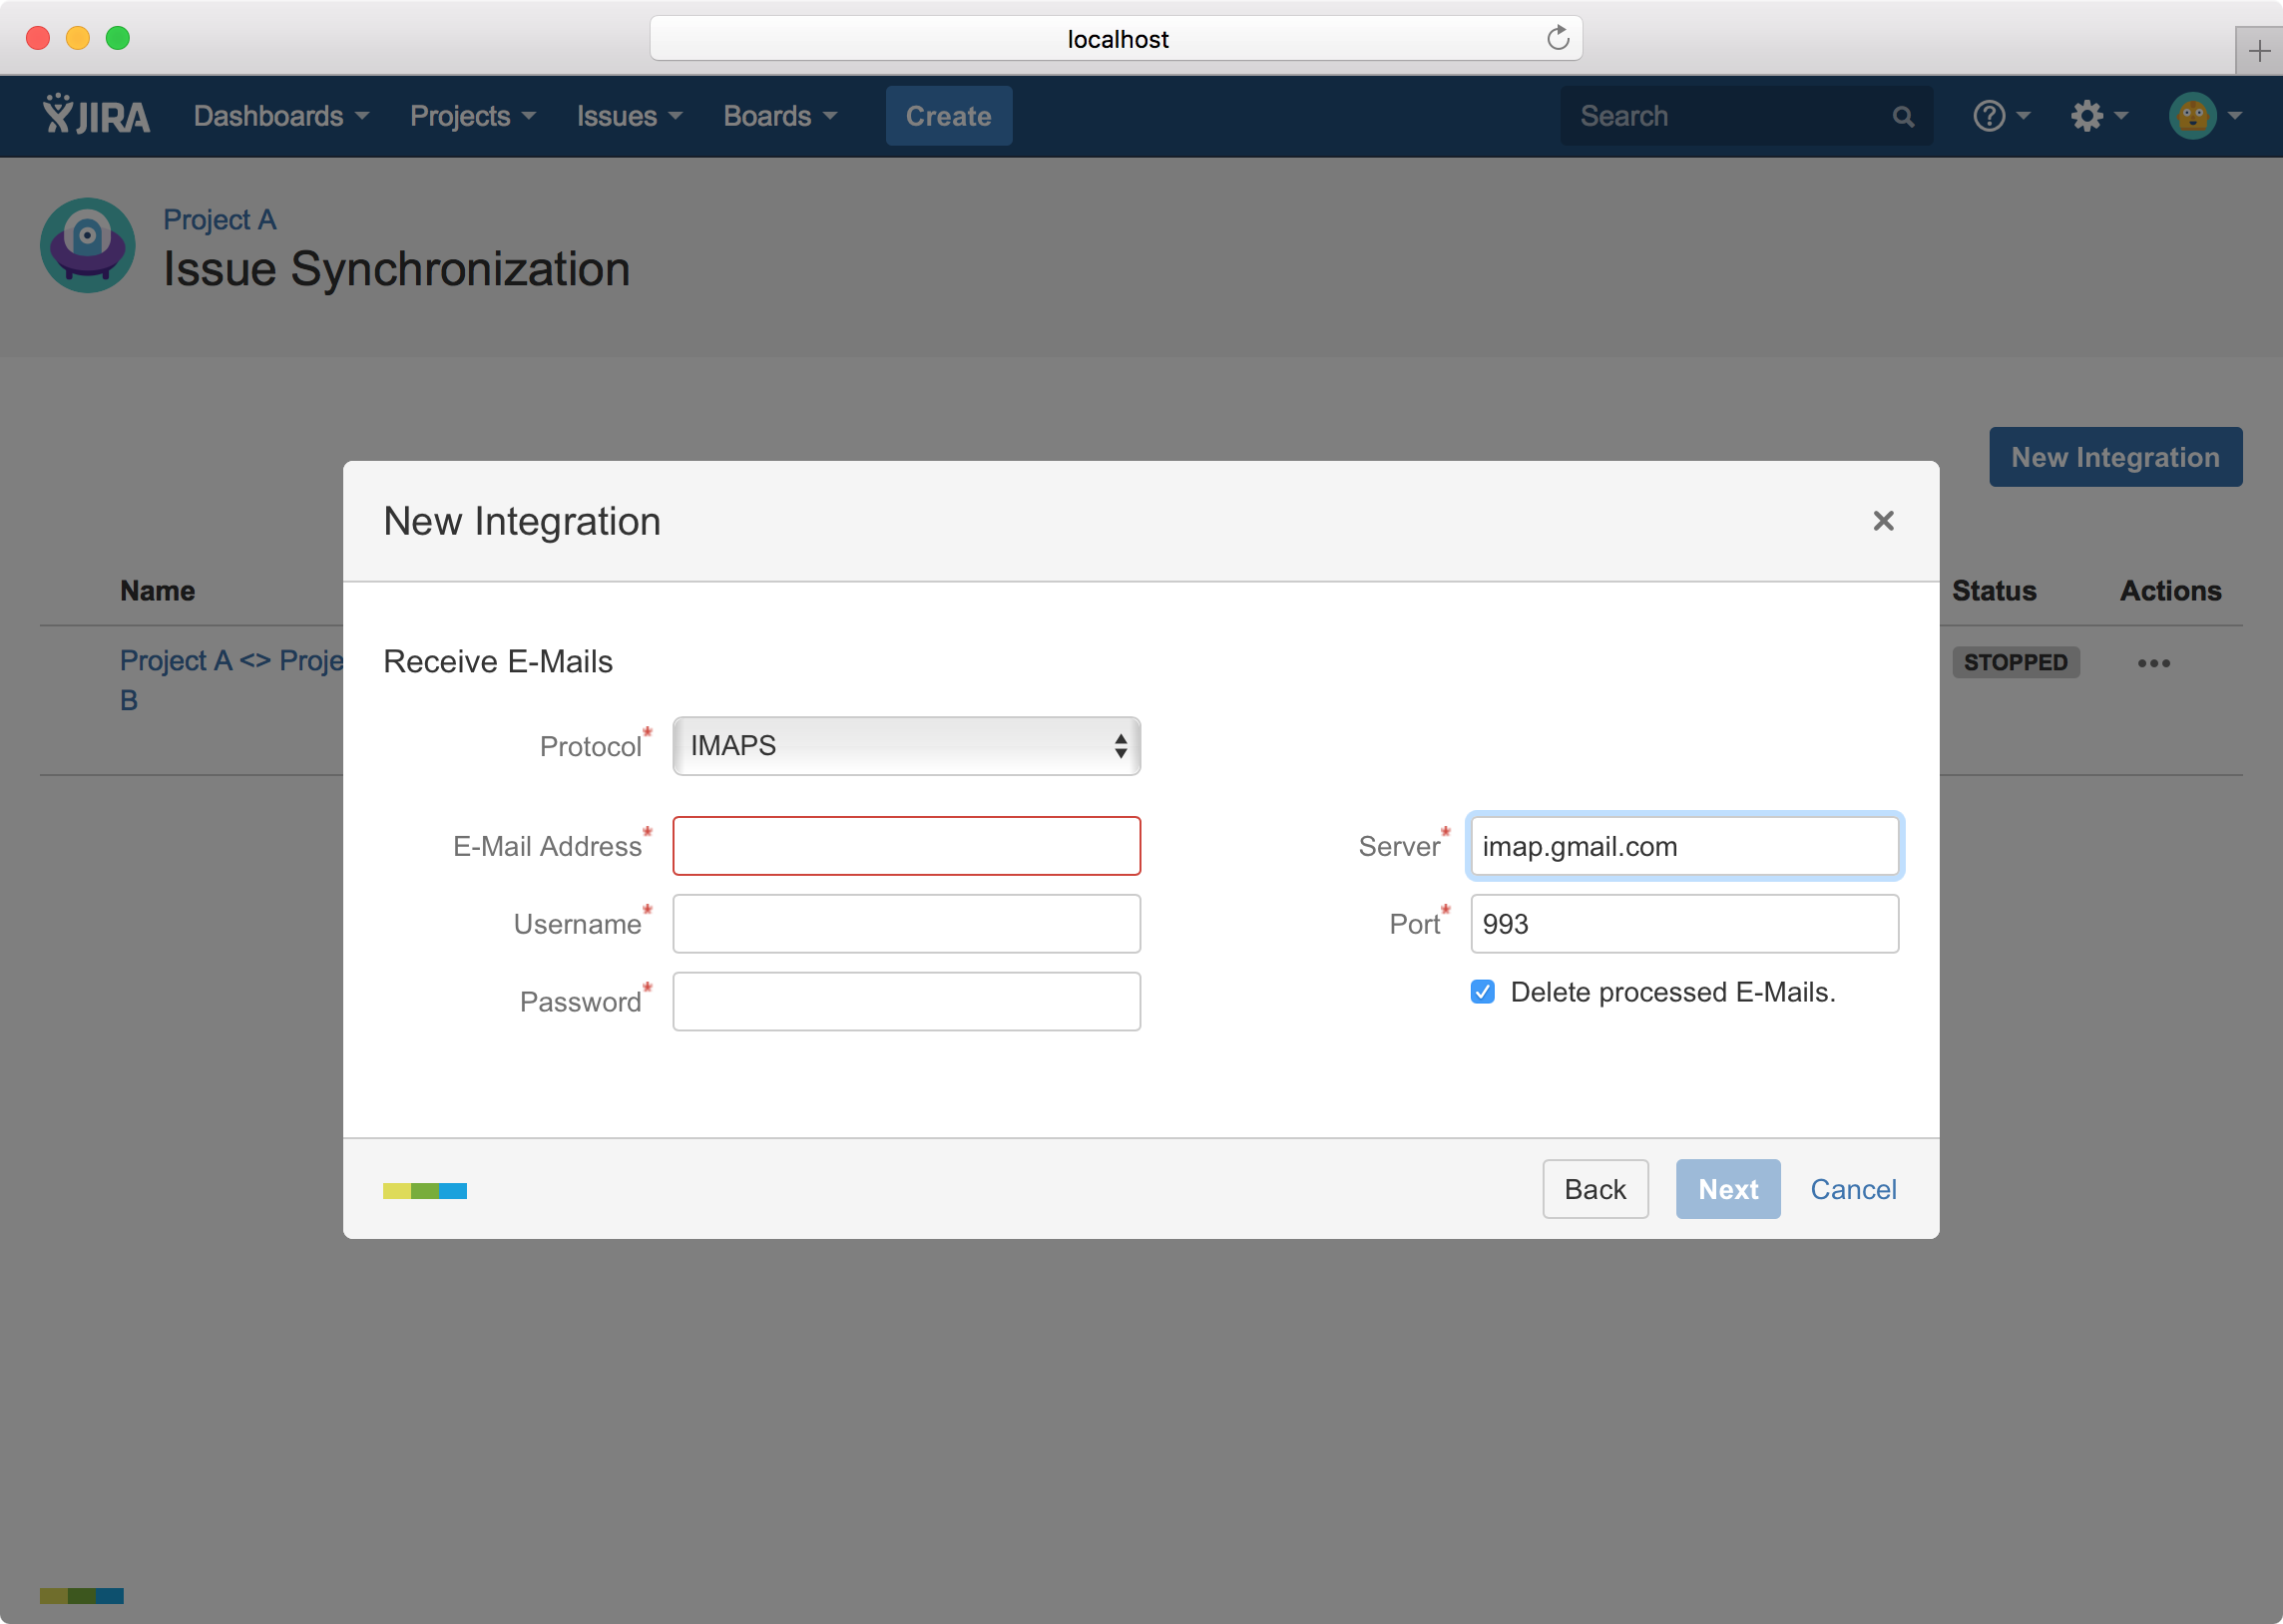 backbone-jira-3.0-email-security-measures